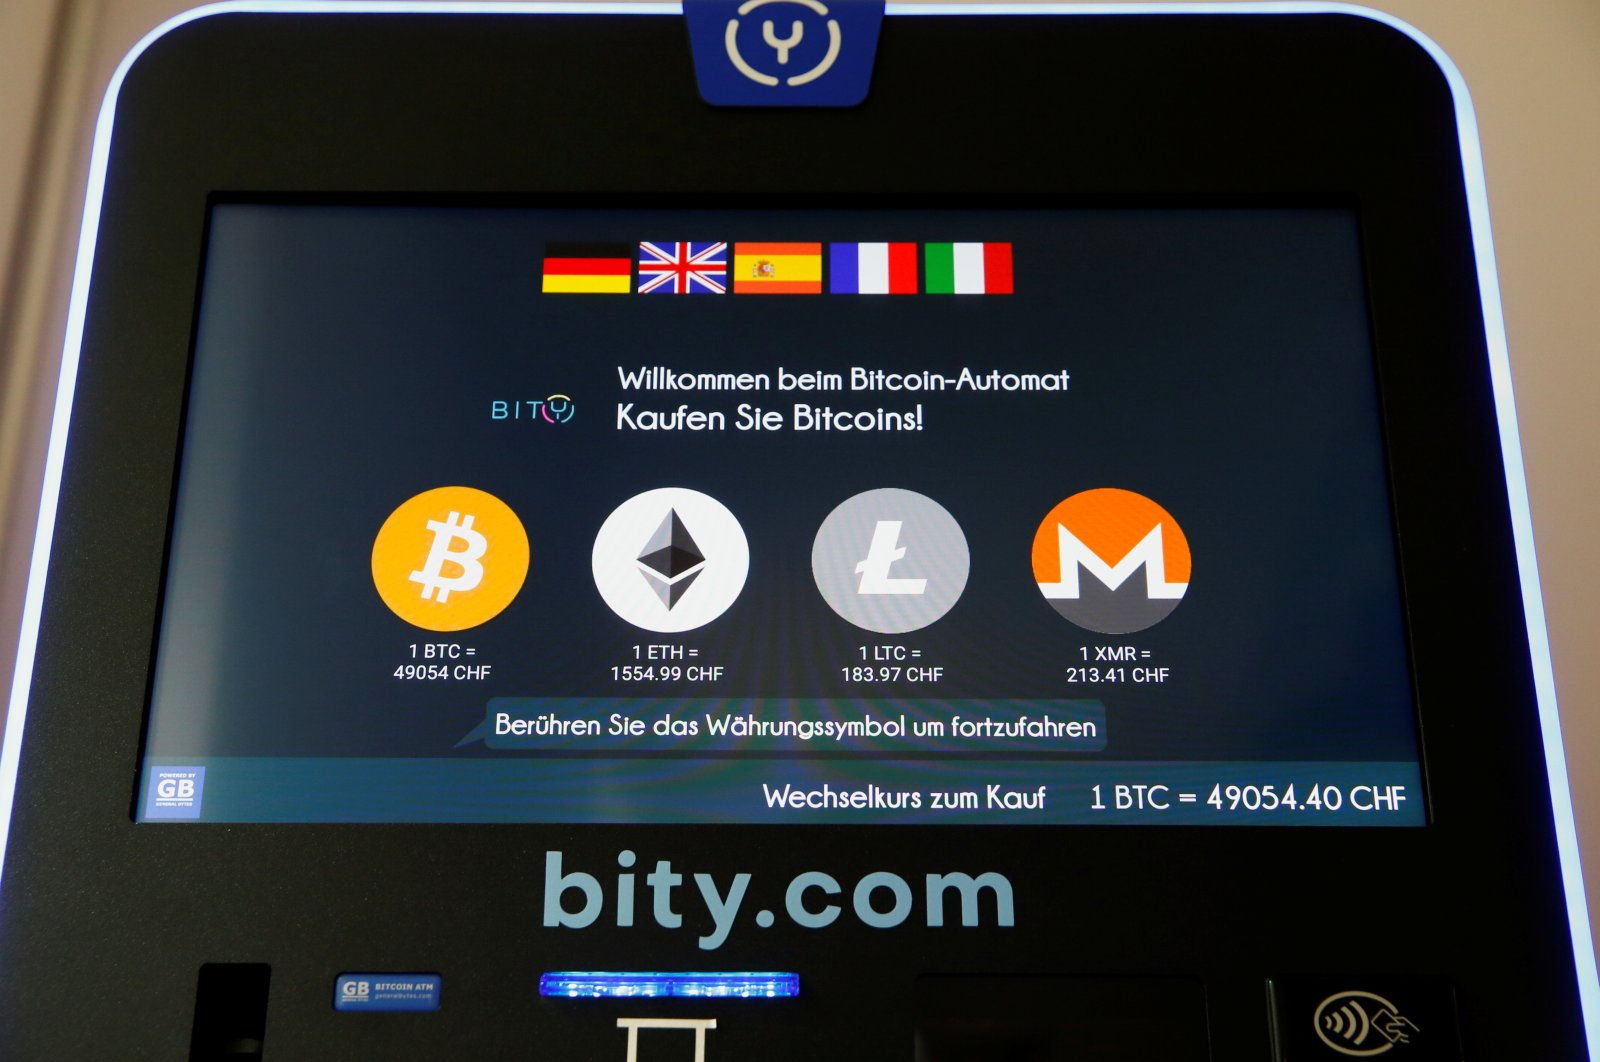 The exchange rates and logos of Bitcoin (BTH), Ether (ETH), Litecoin (LTC) and Monero (XMR) are seen on the display of a cryptocurrency ATM in Zurich, Switzerland, March 4, 2021. (Reuters Photo)